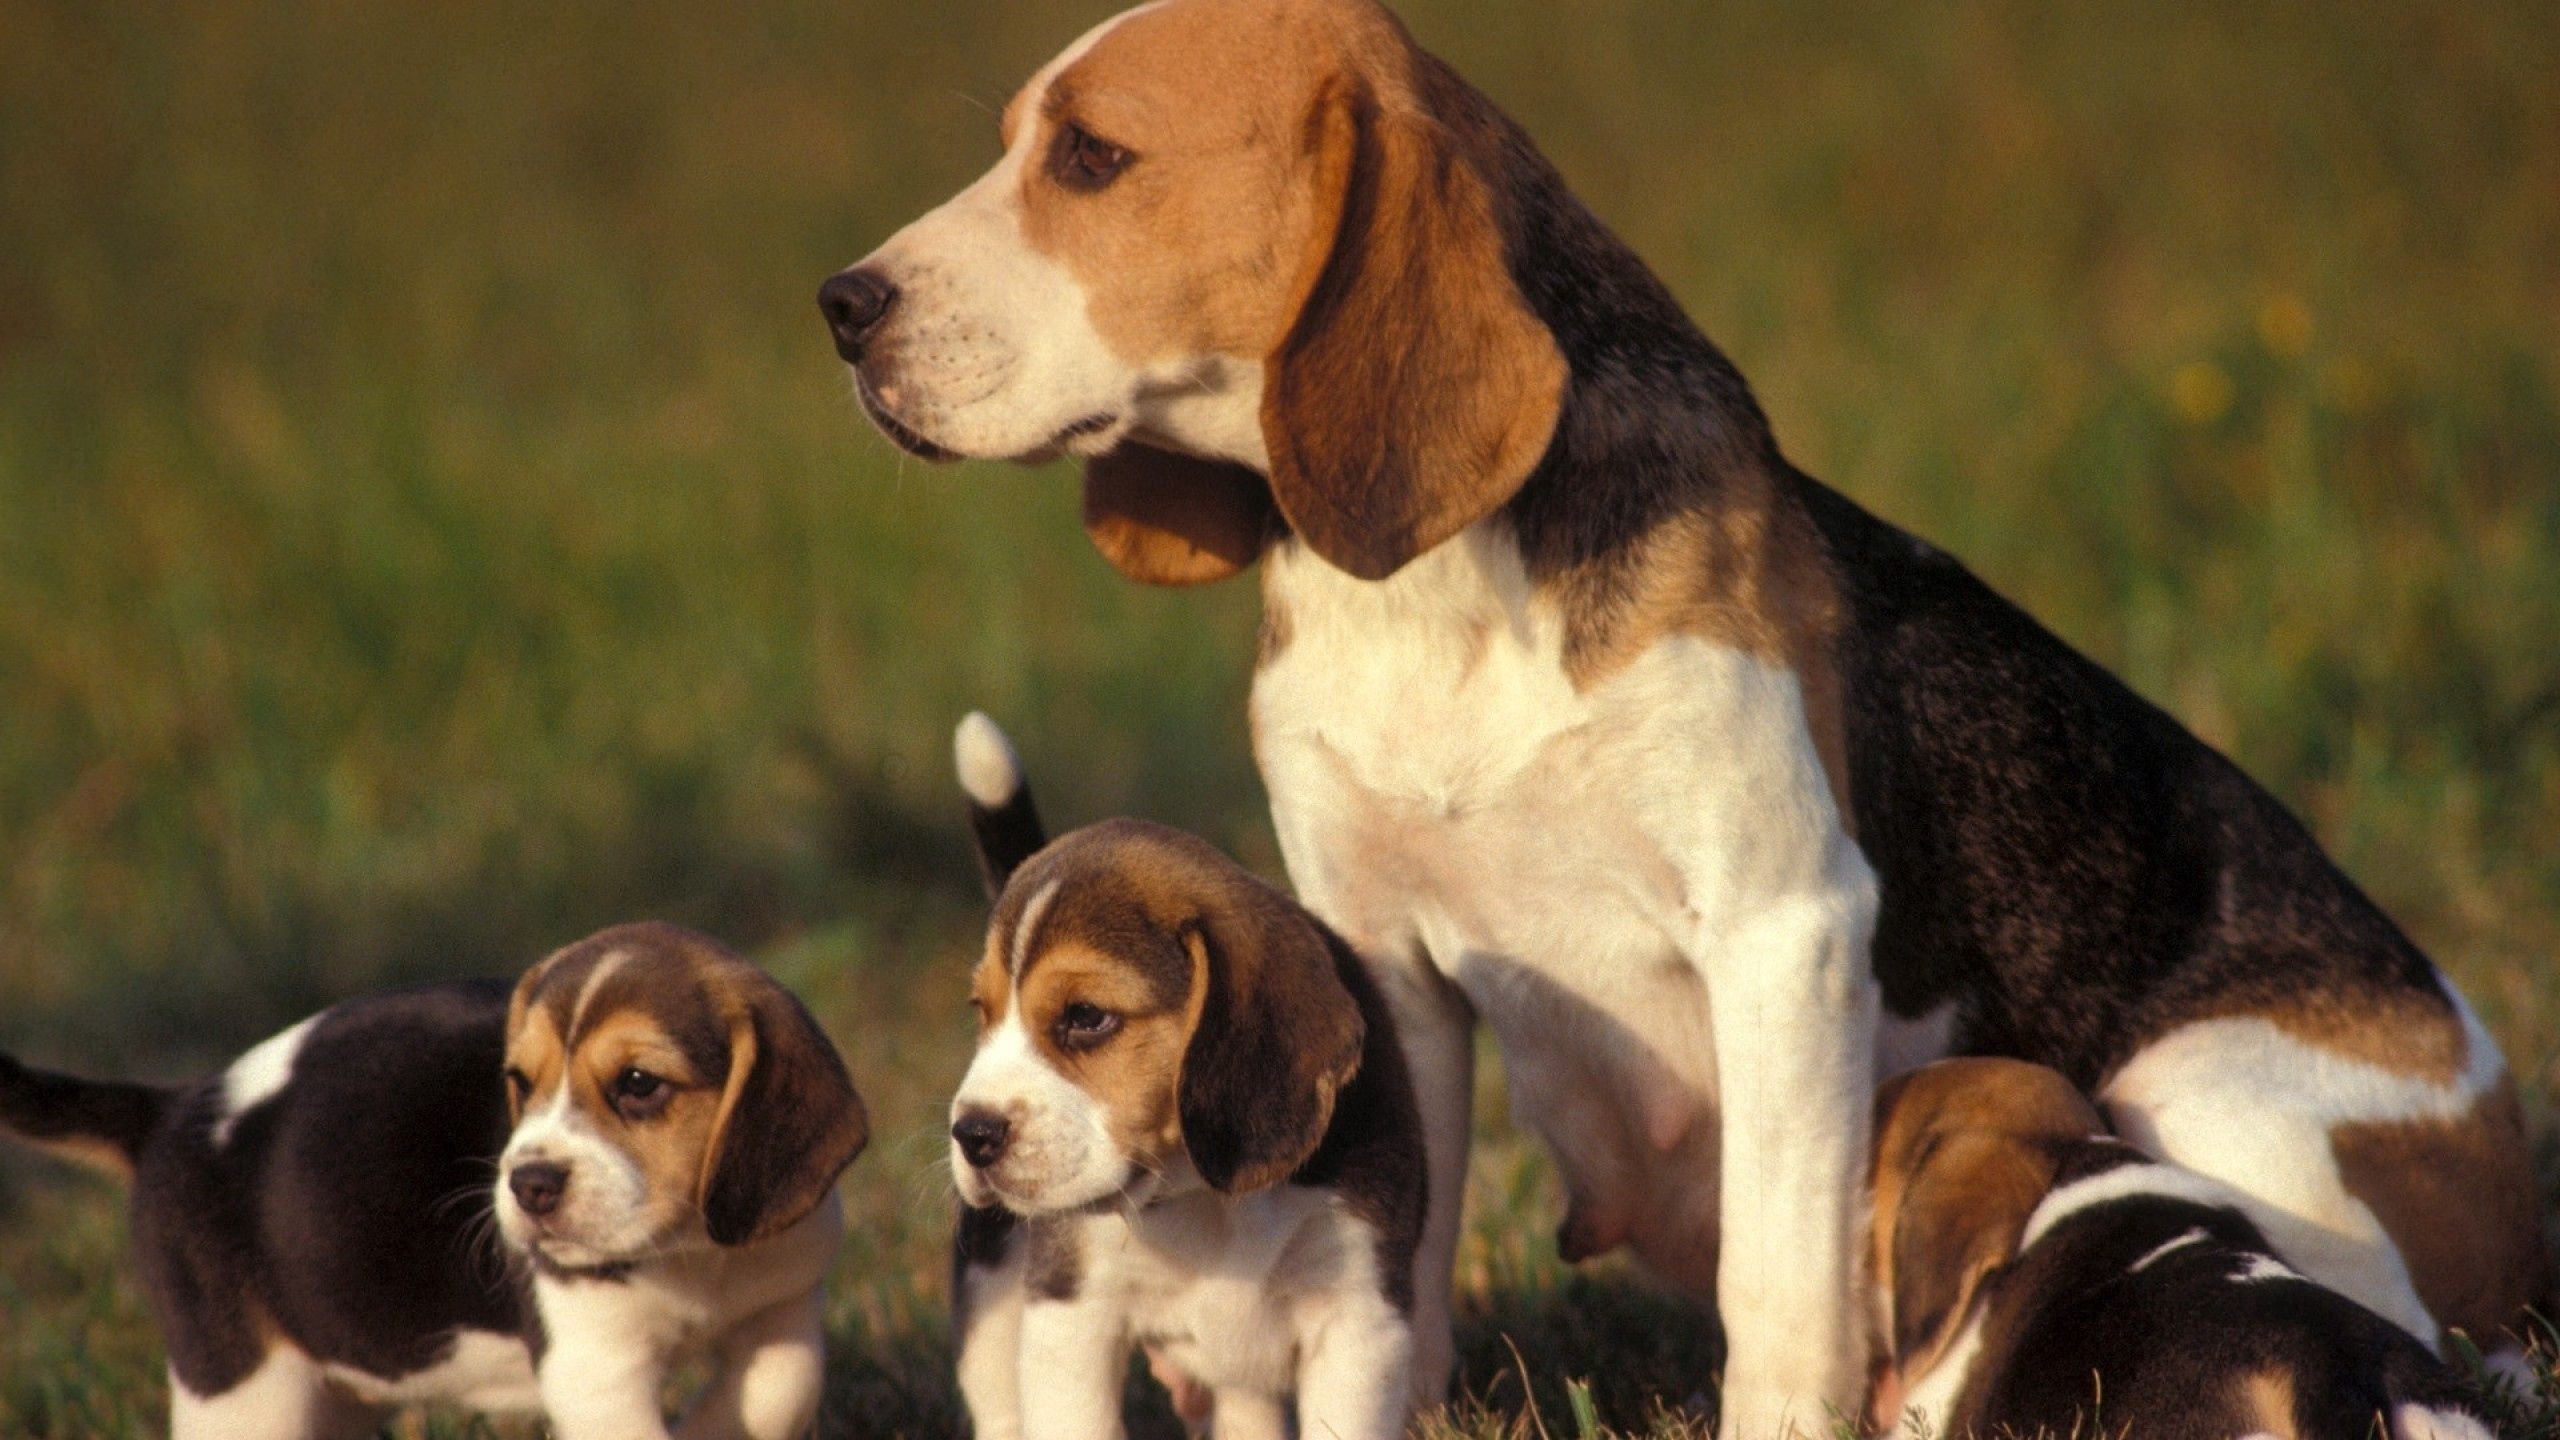 145553 download wallpaper Animals, Grass, Sit, Dog, Puppies screensavers and pictures for free